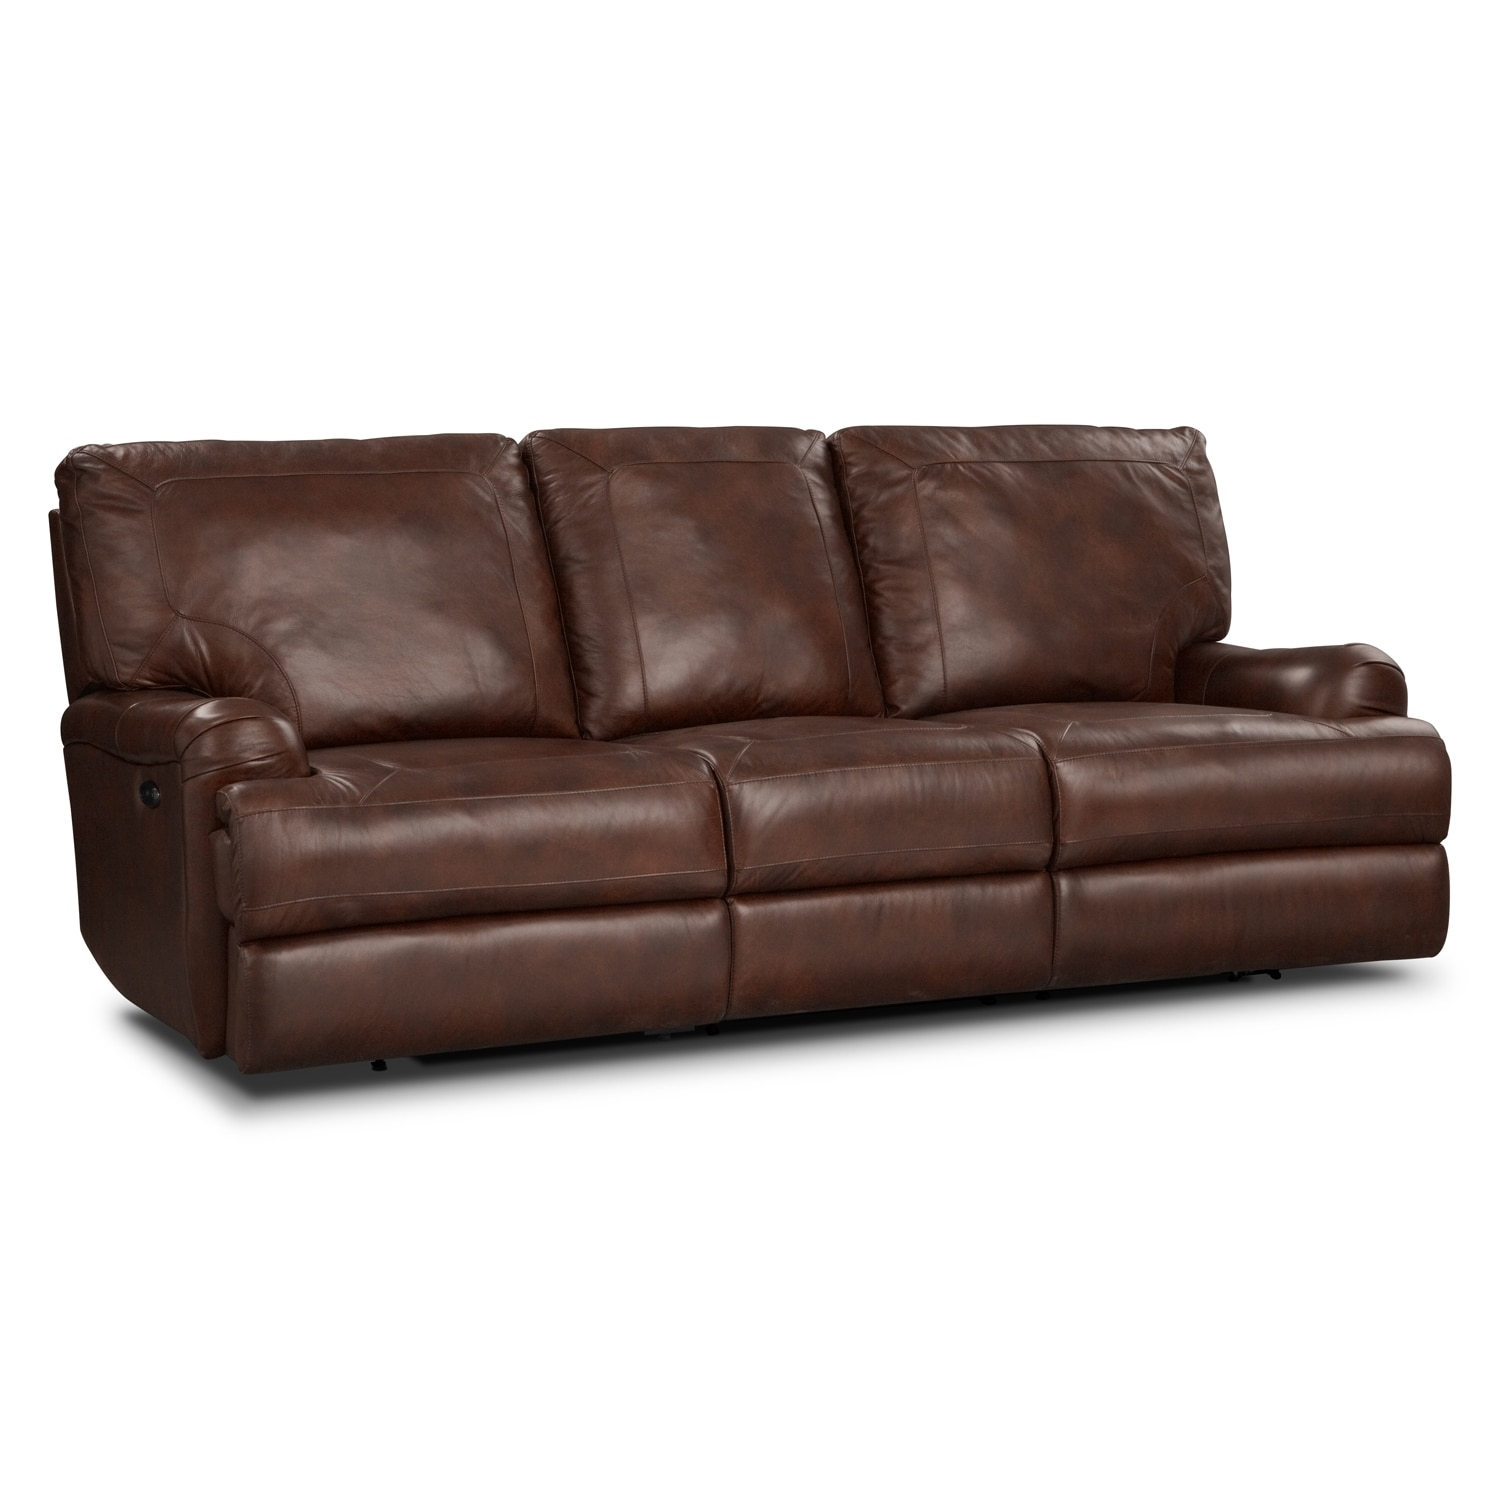 kingsway power reclining sofa   brown. Value City Furniture   Cuyahoga Falls  OH 44221